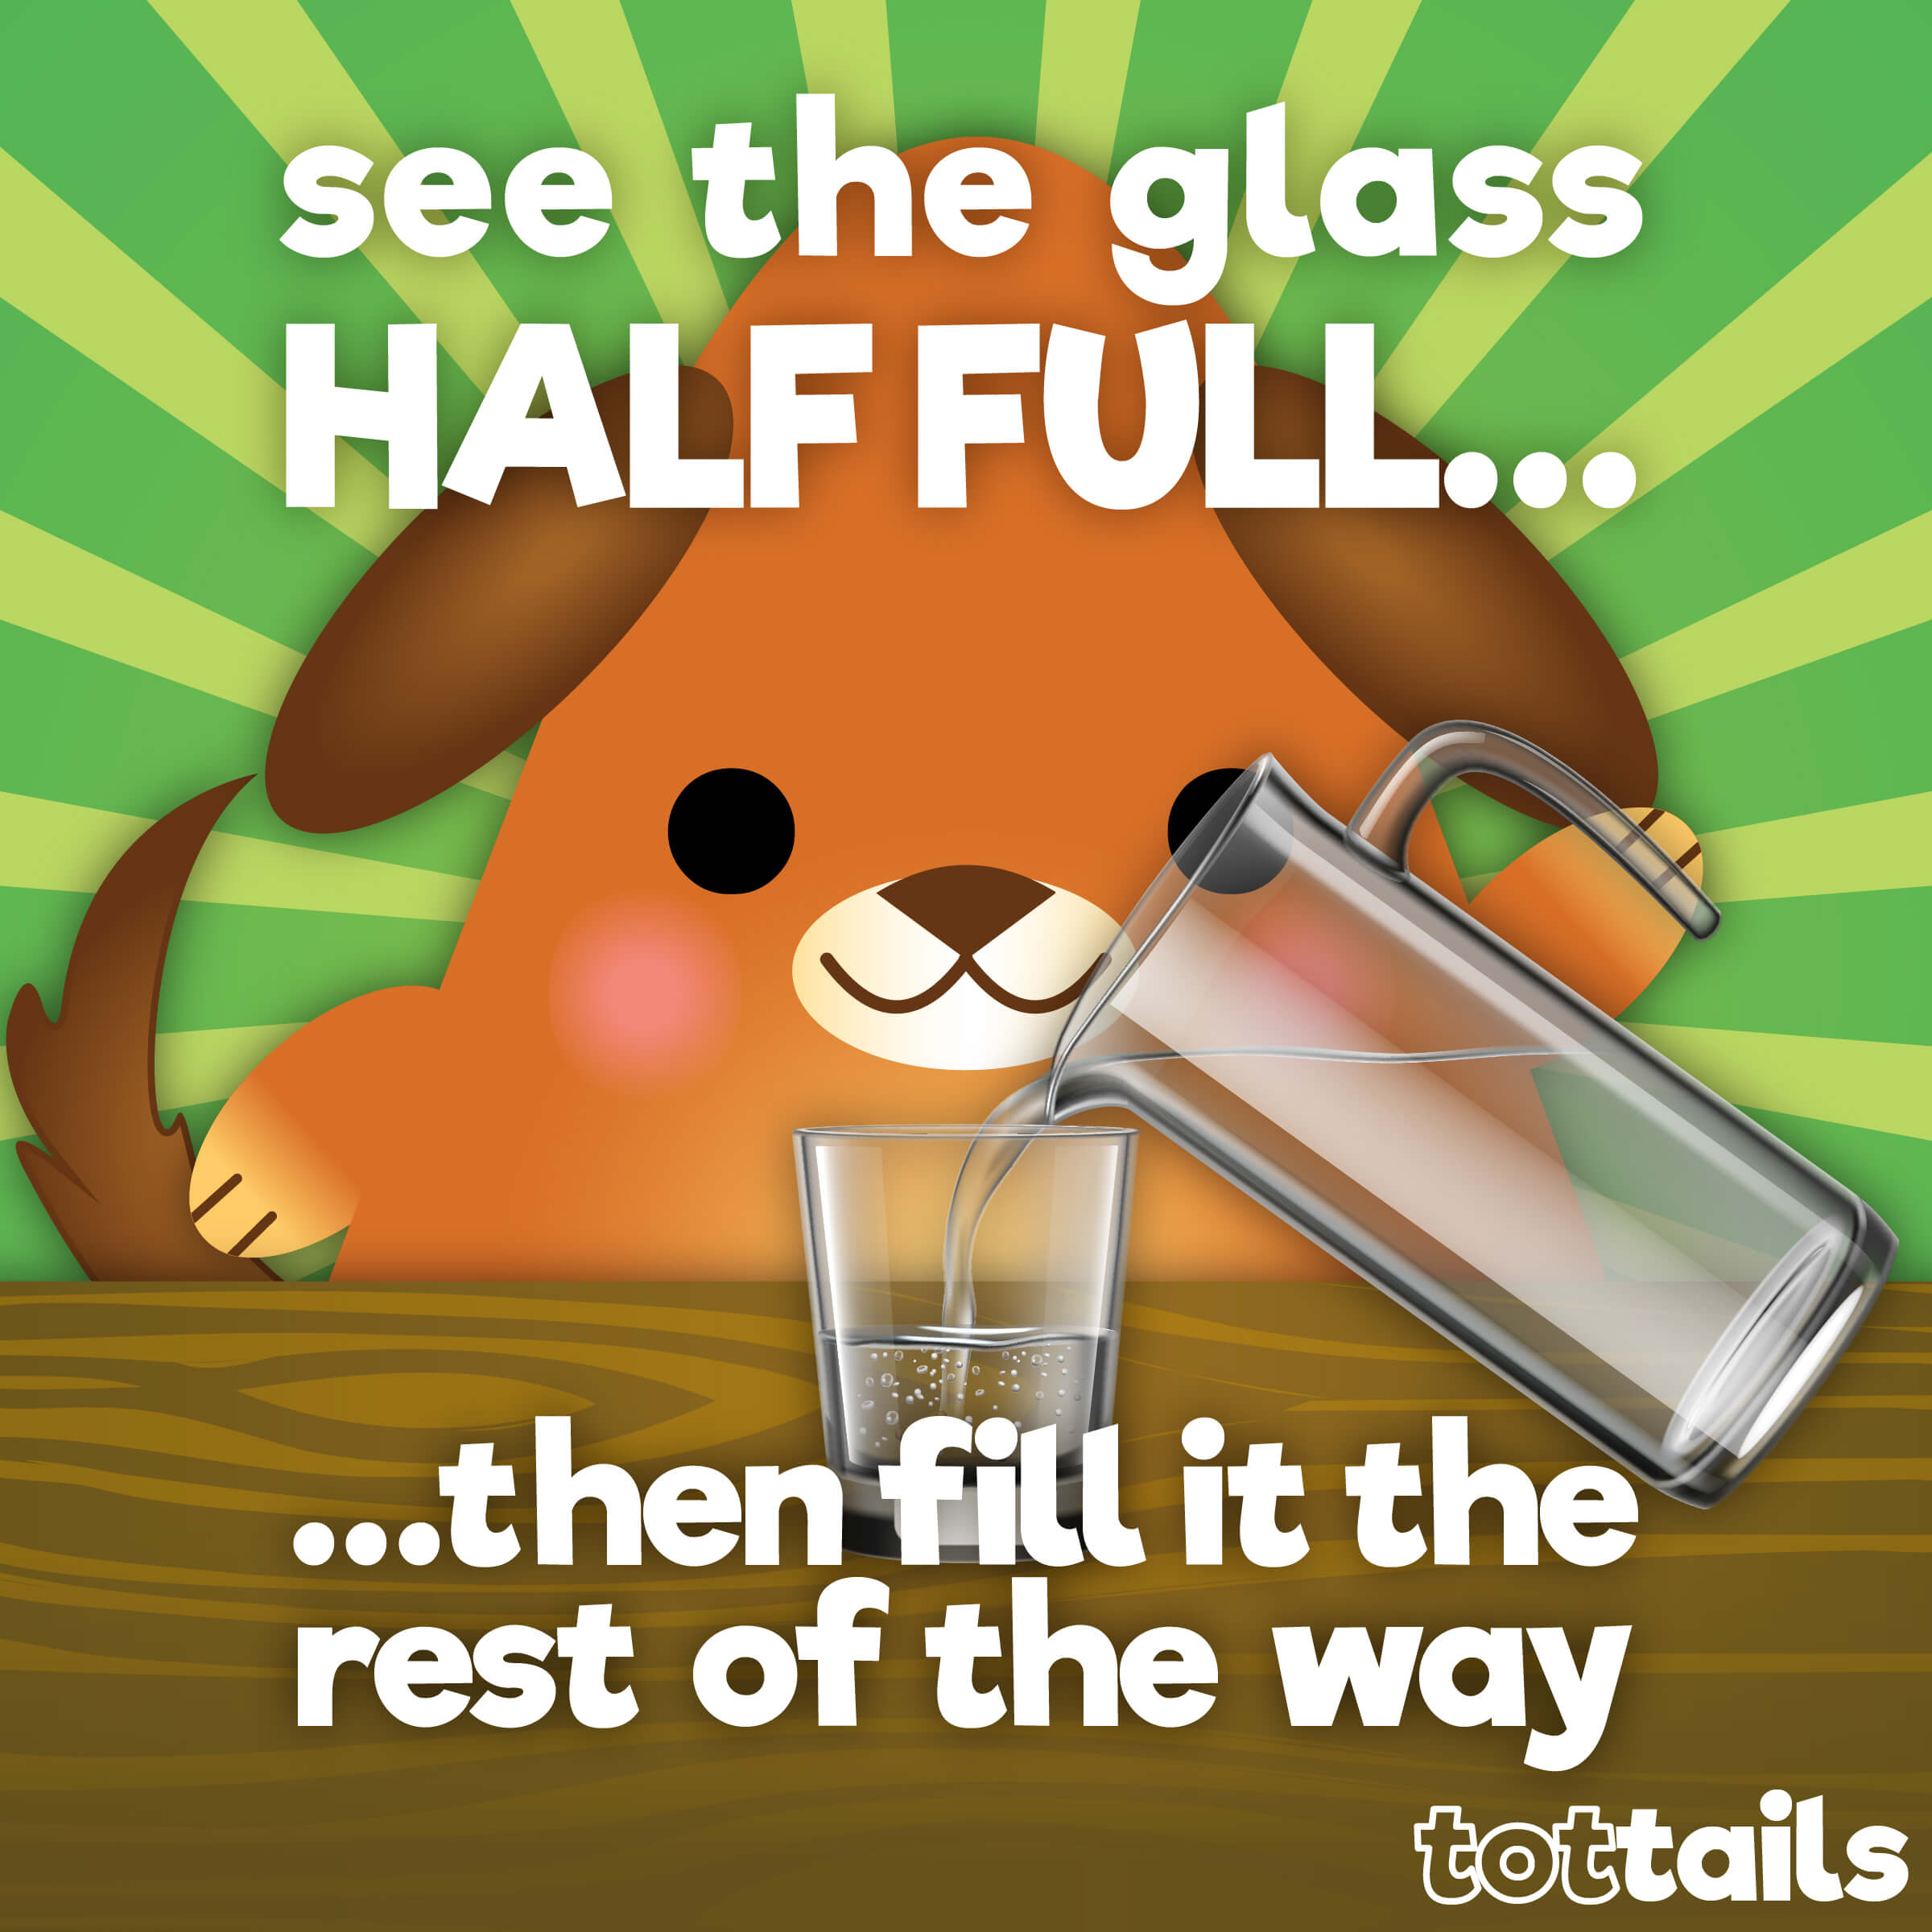 Positivity for kids - let's see the glass half full, then fill it the rest of the way.